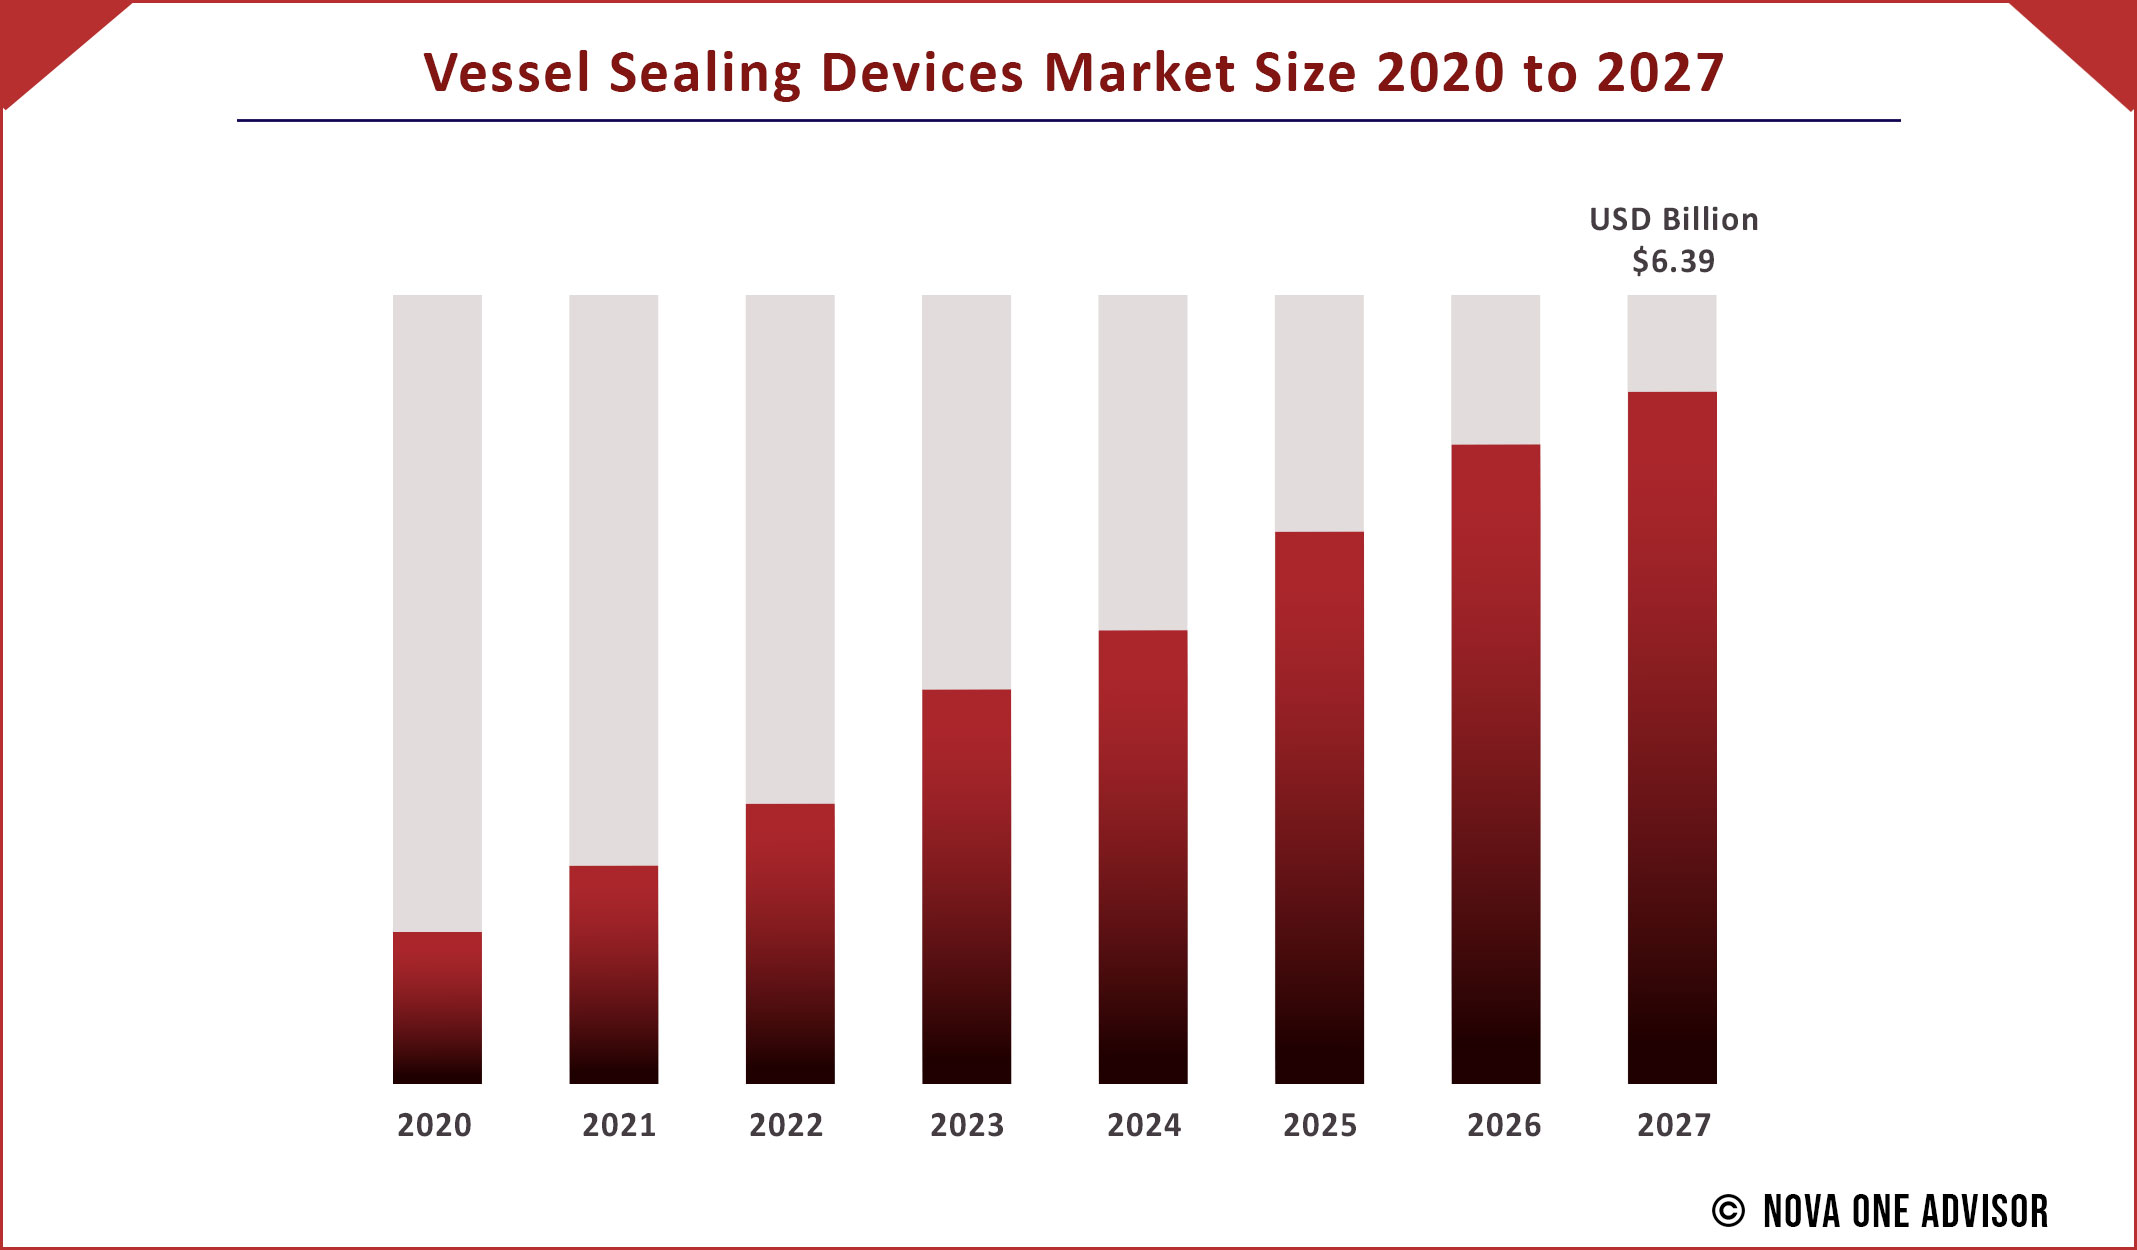 Vessel Sealing Devices Market Size 2020 to 2027